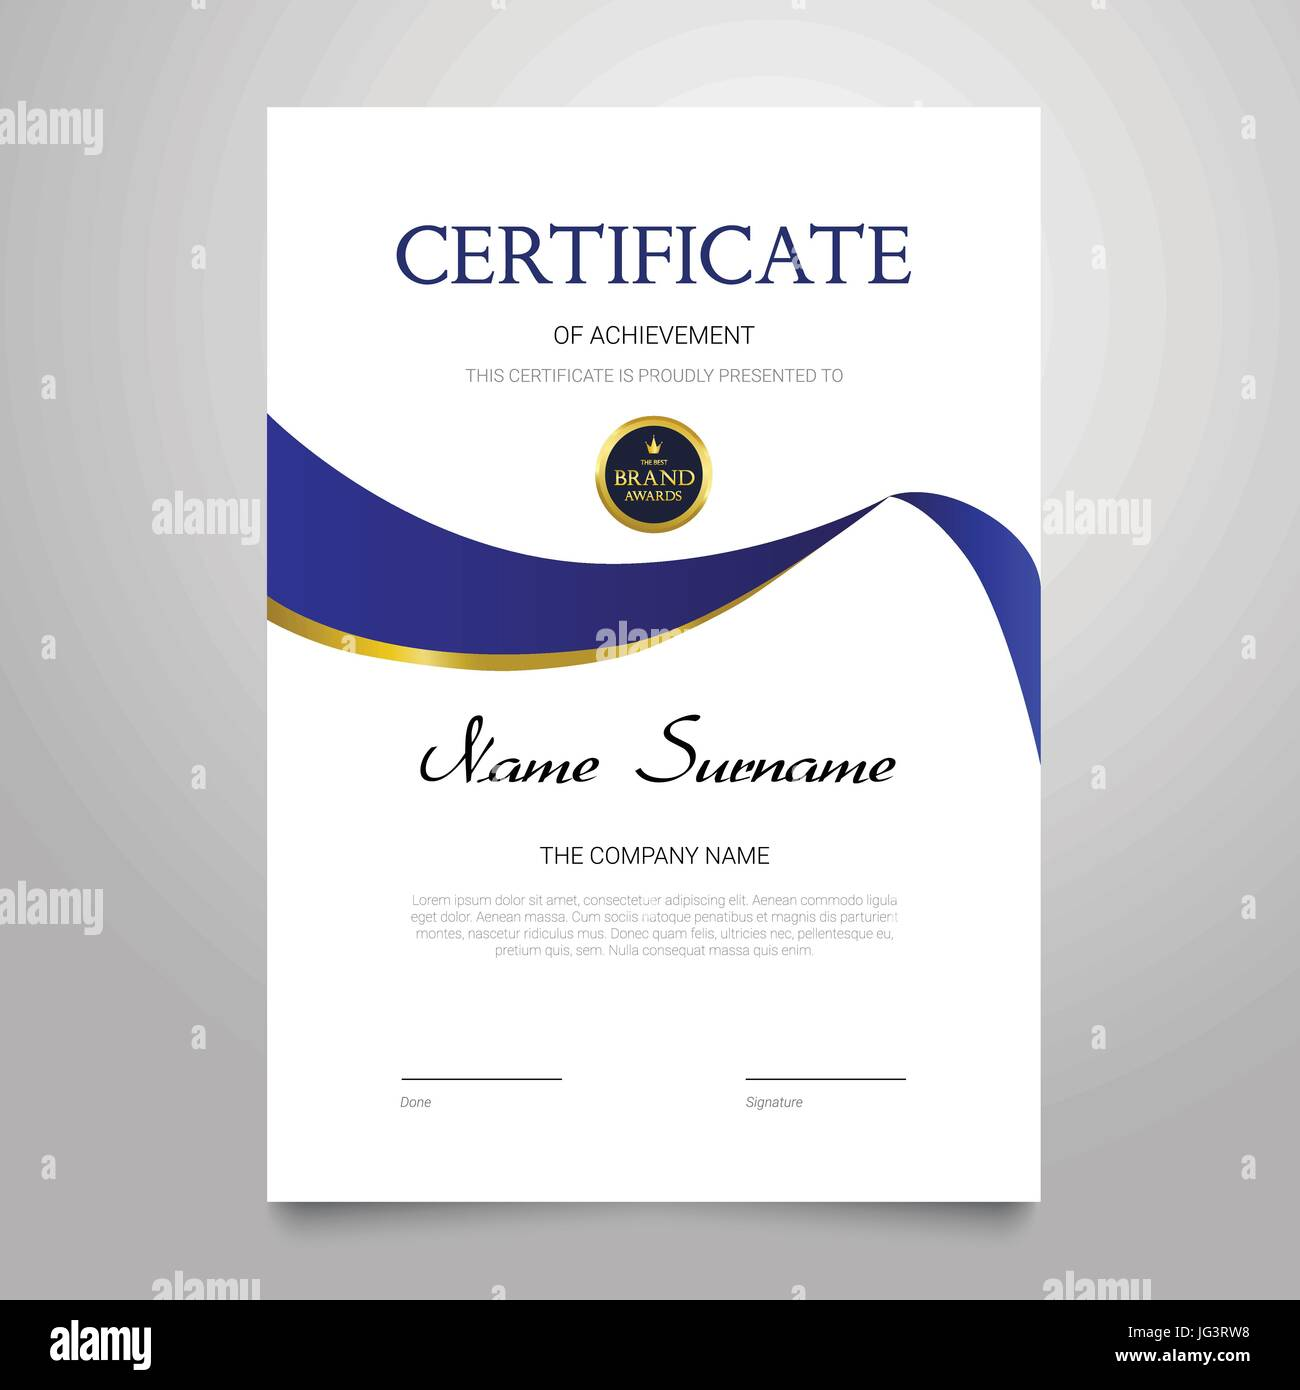 Certificate template modern vertical elegant vector document certificate template modern vertical elegant vector document with luxury design diploma of achievement appreciation with copy space for name surn yelopaper Images